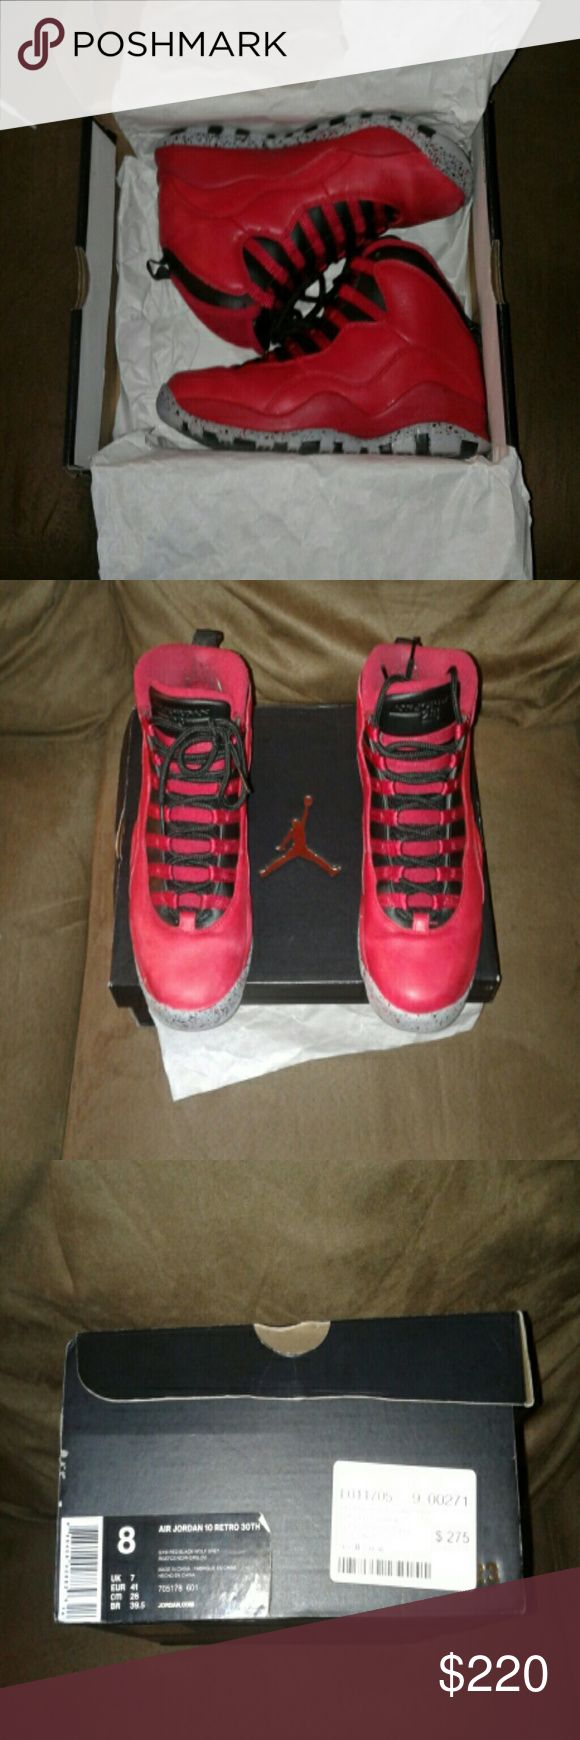 Nike Retro Jordan 10 Bulls Over Broadway purchased at Flight Club, only wore them two times Jordan Shoes Athletic Shoes